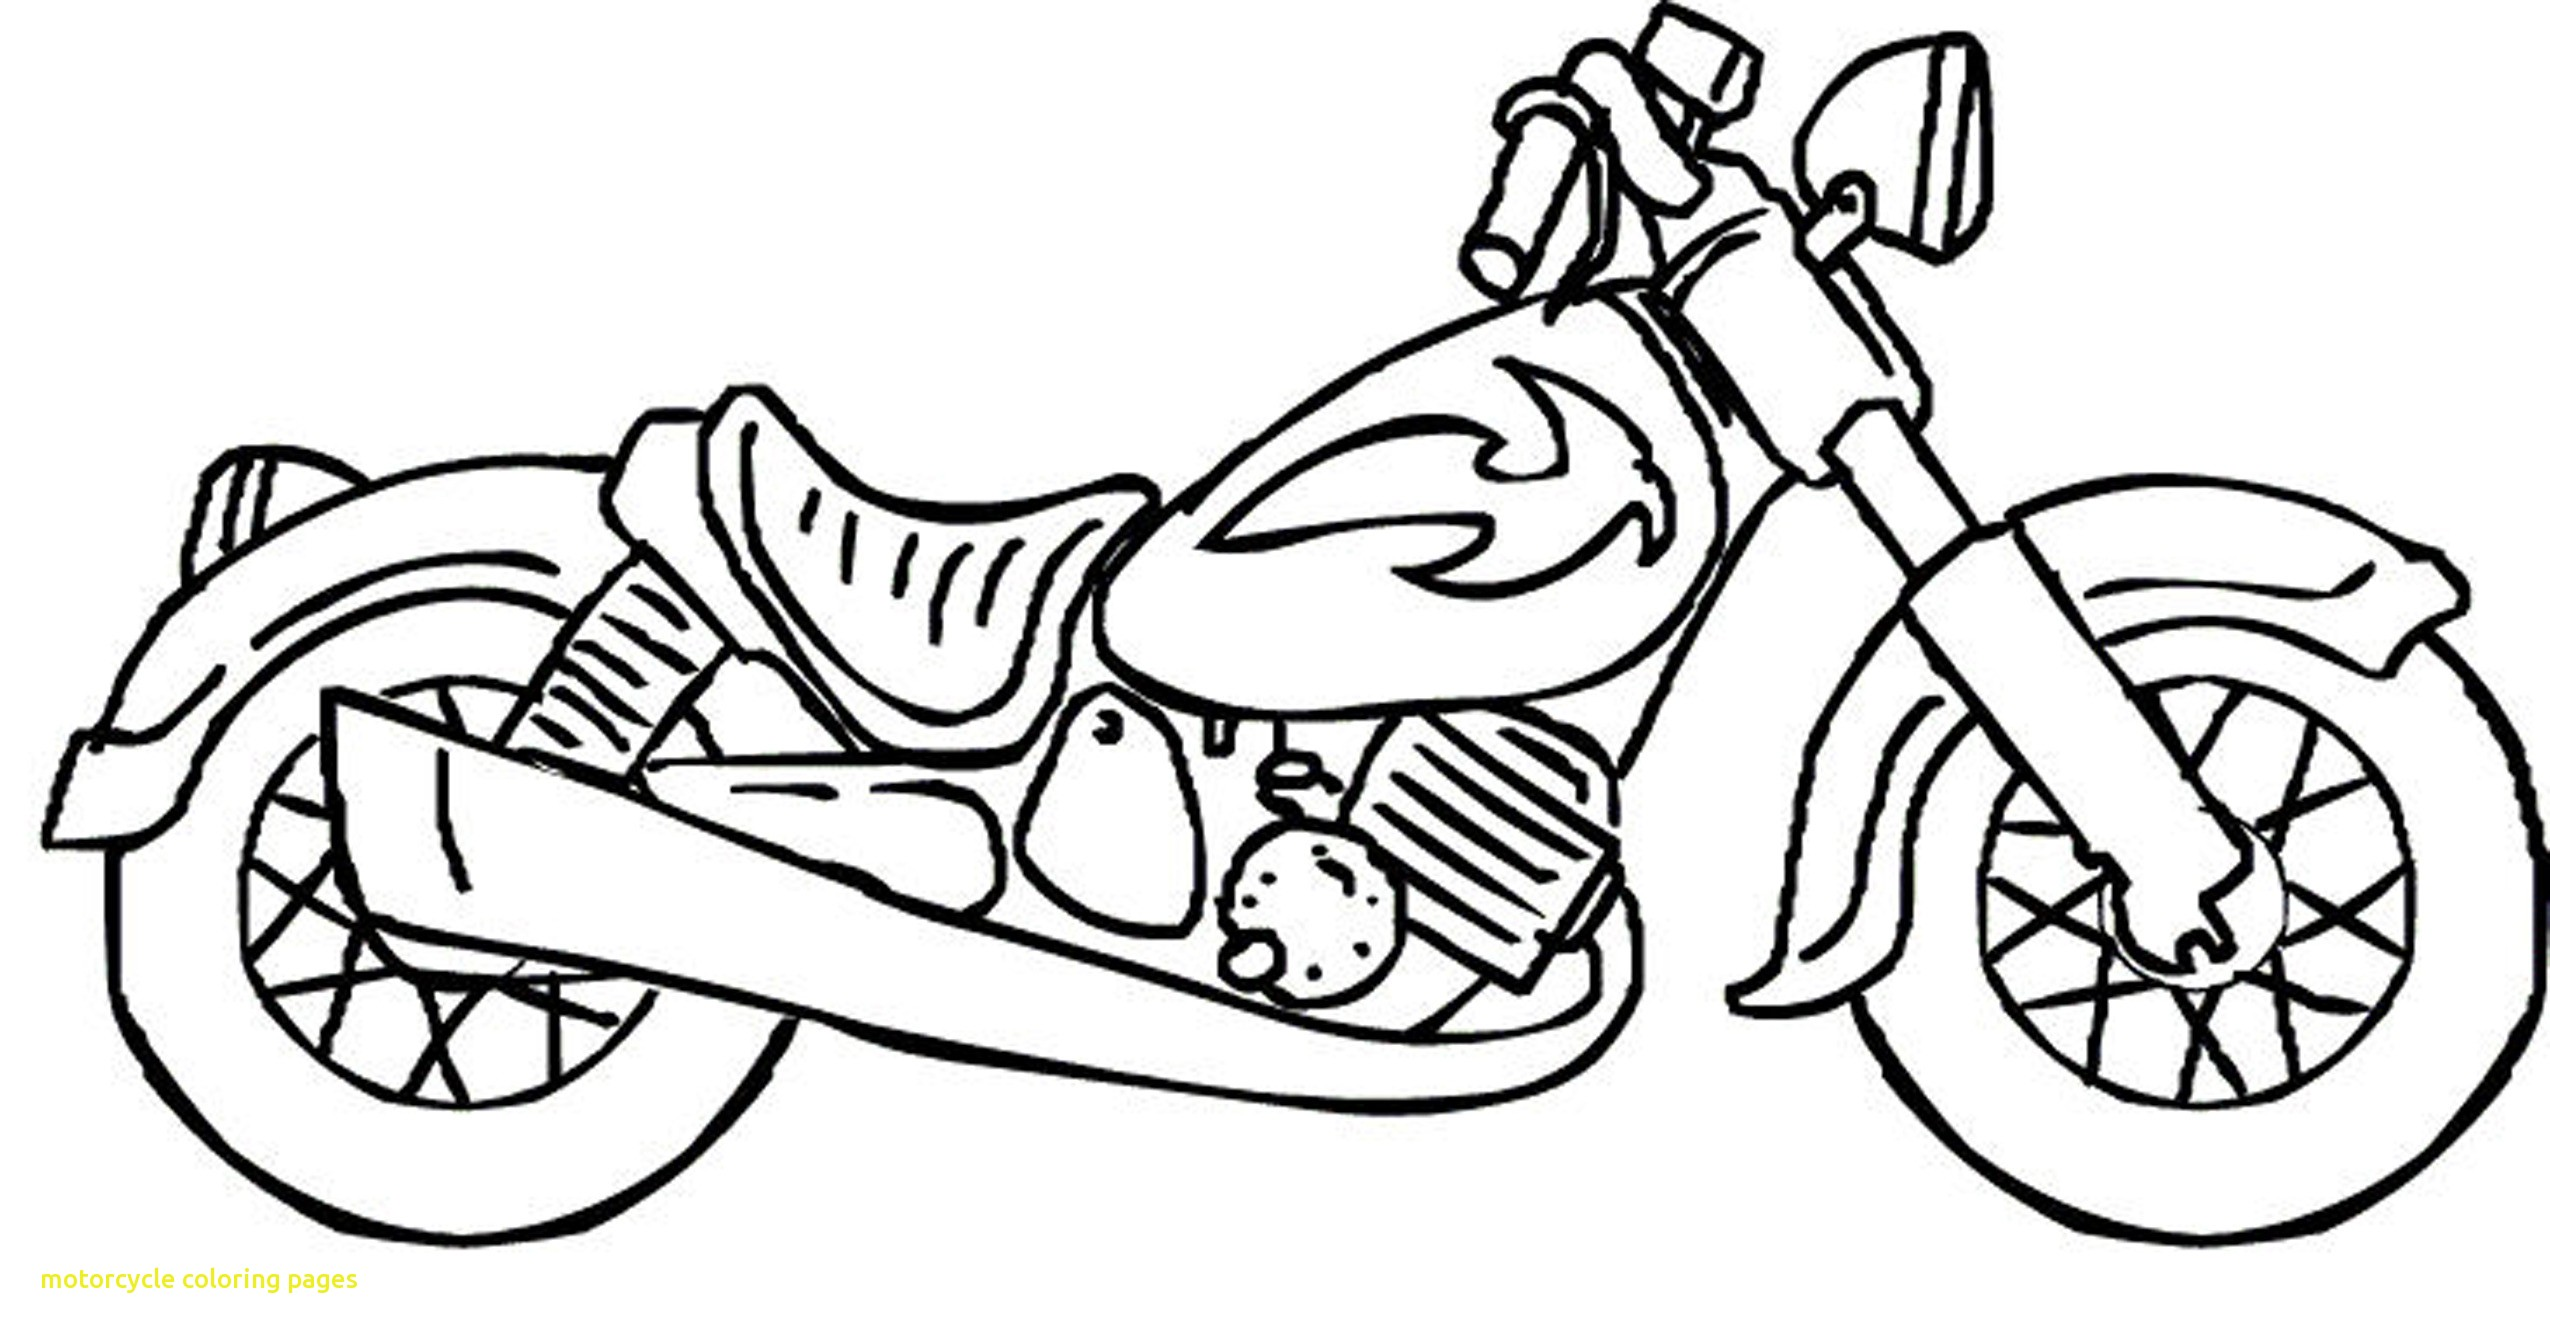 2550x1336 Motorcycle Coloring Pages Printable Image With Page